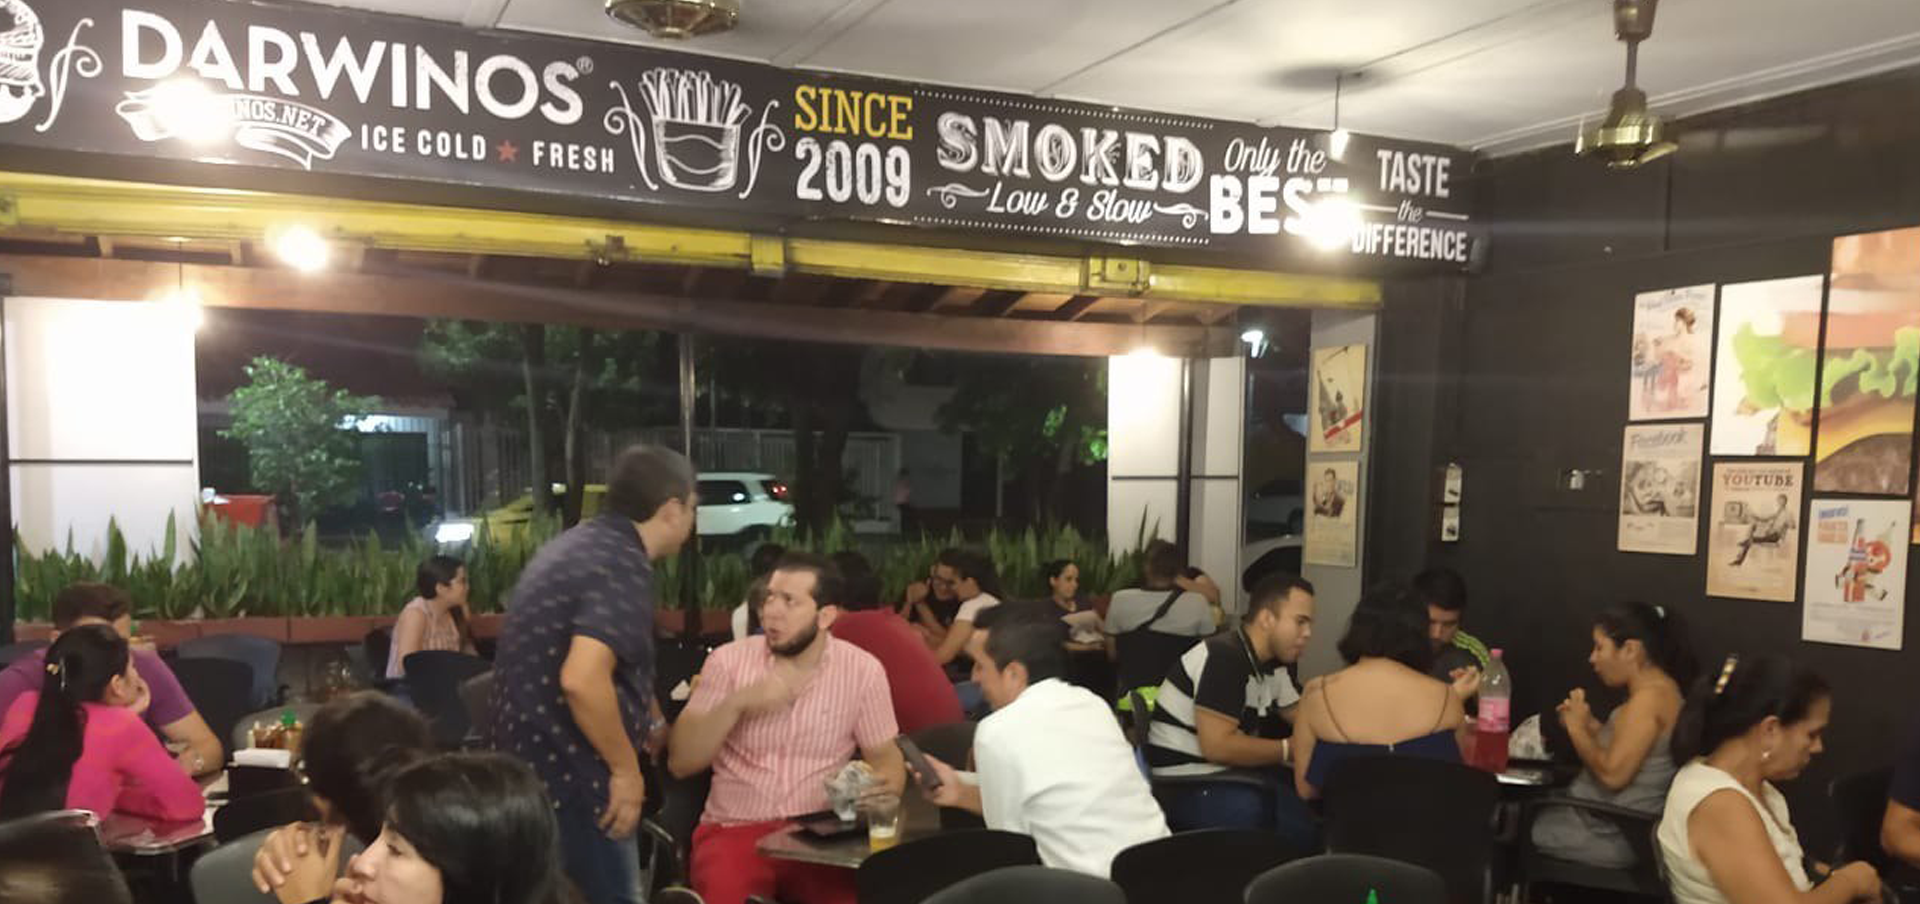 Darwinos Burger Joint Hosts Colombia's Second Point of Sale and Crypto ATM